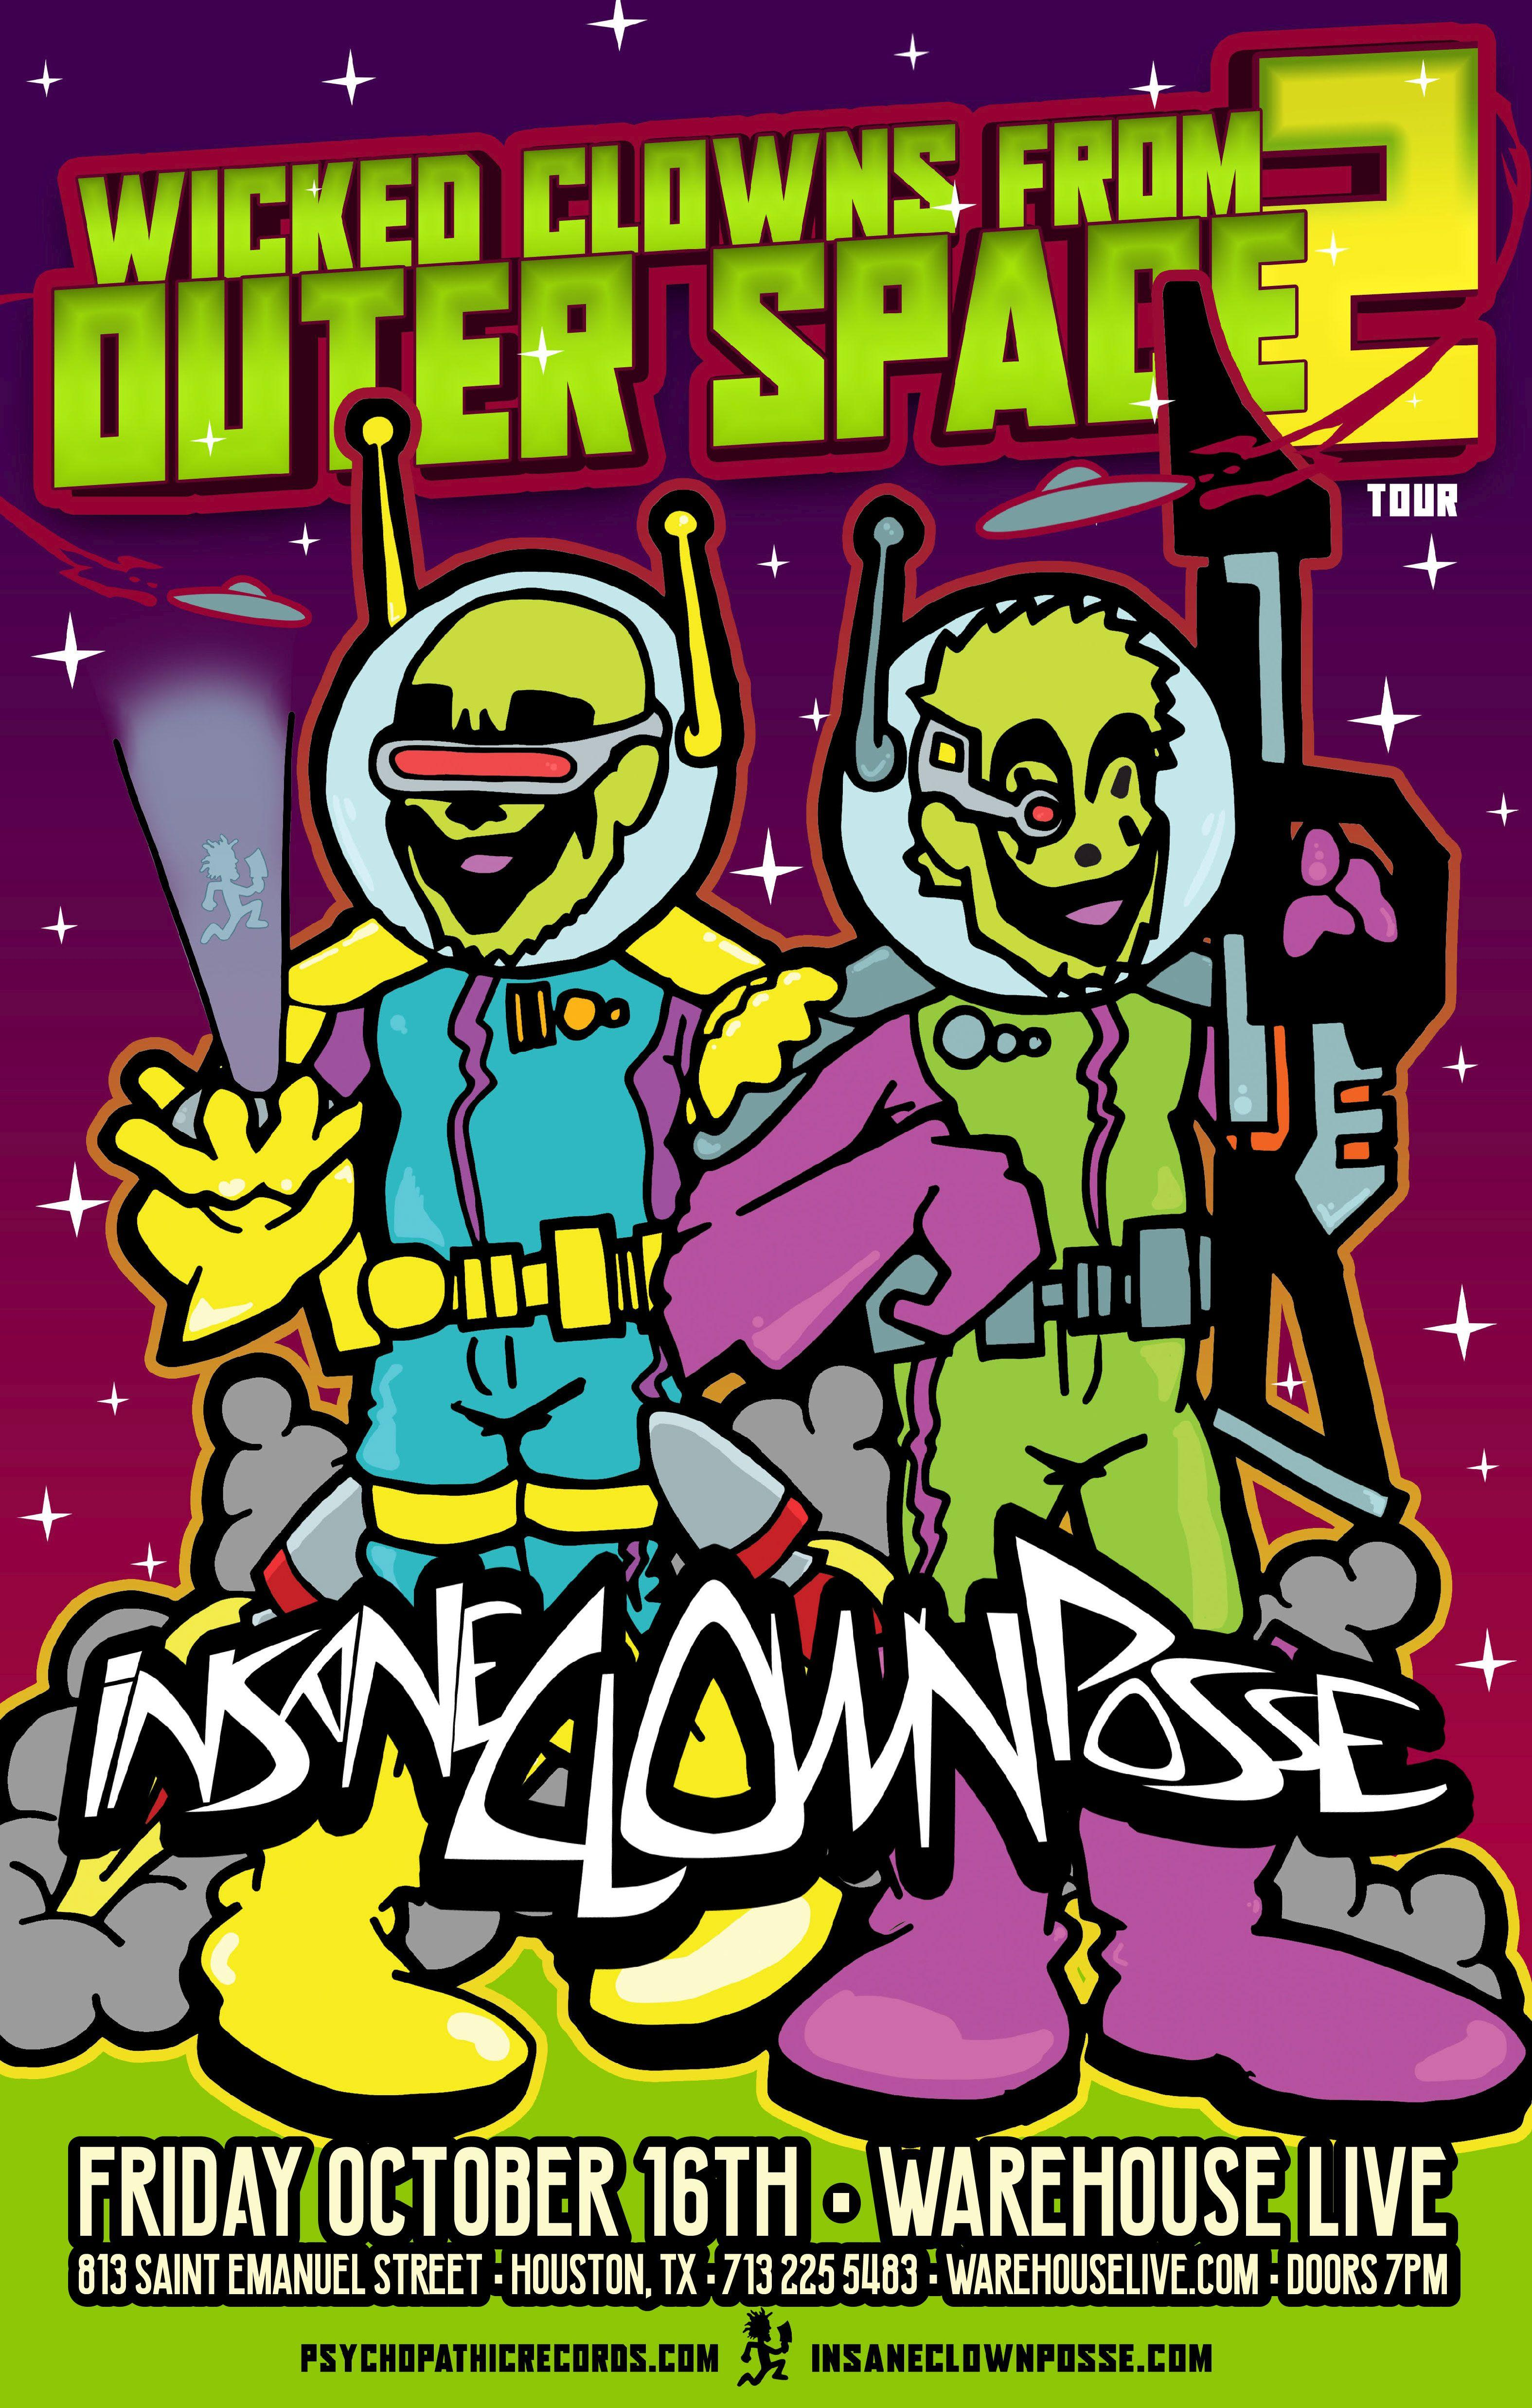 INSANE CLOWN POSSE - WICKED CLOWNS FROM OUTER SPACE 2 TOUR